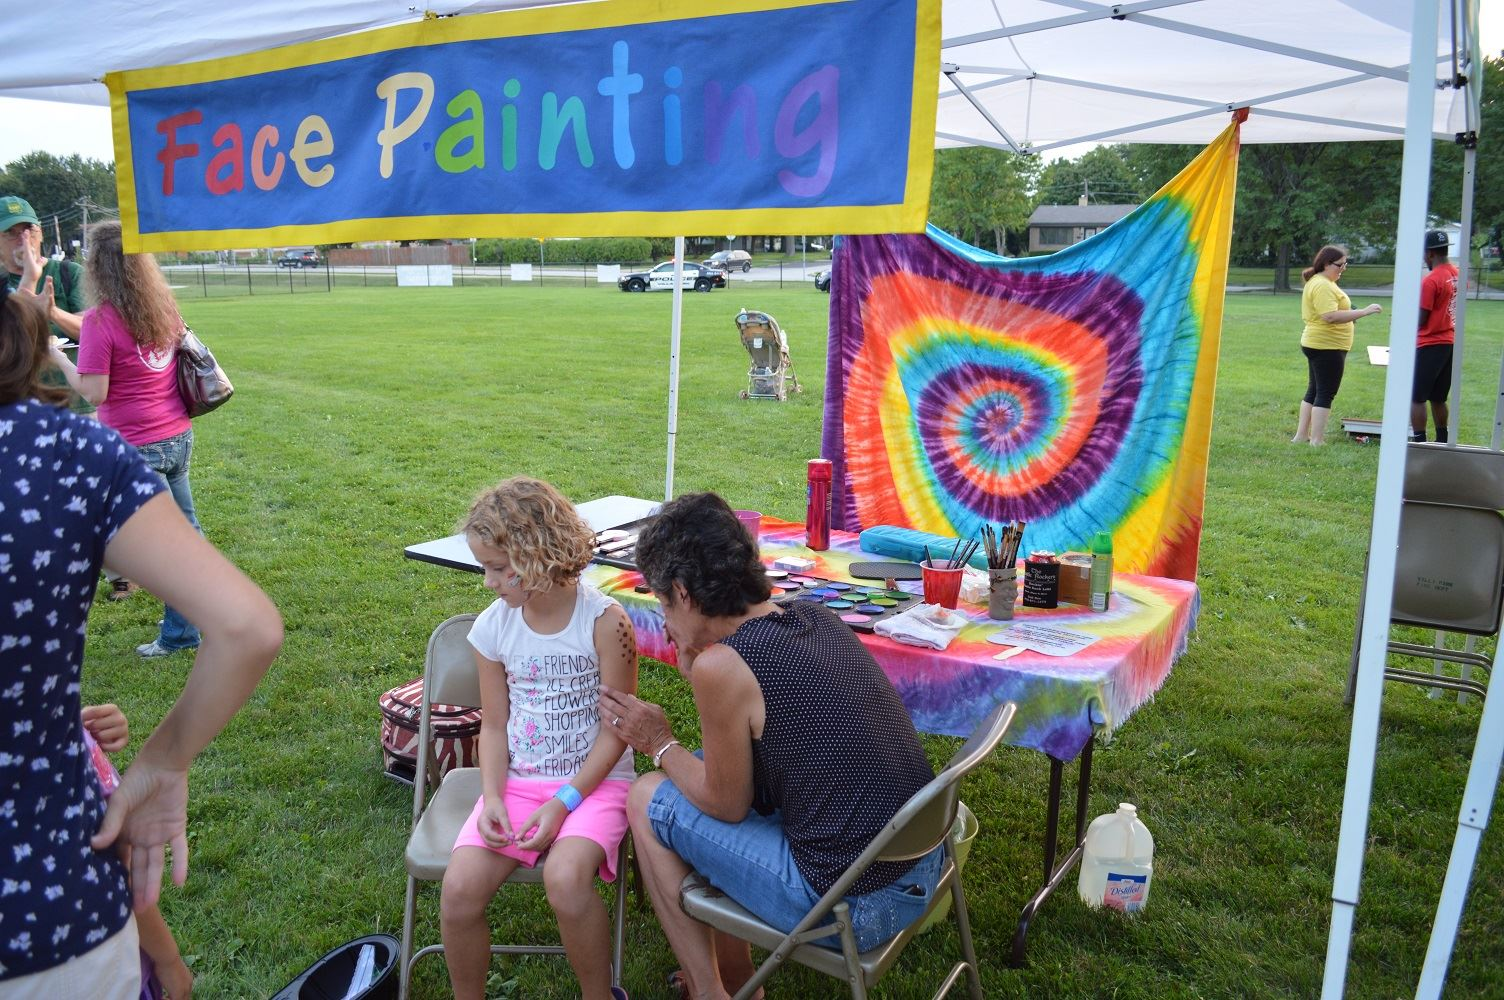 A young girl gets her arm painted at a National Night Out event at the Iowa Community Center, Aug. 2.